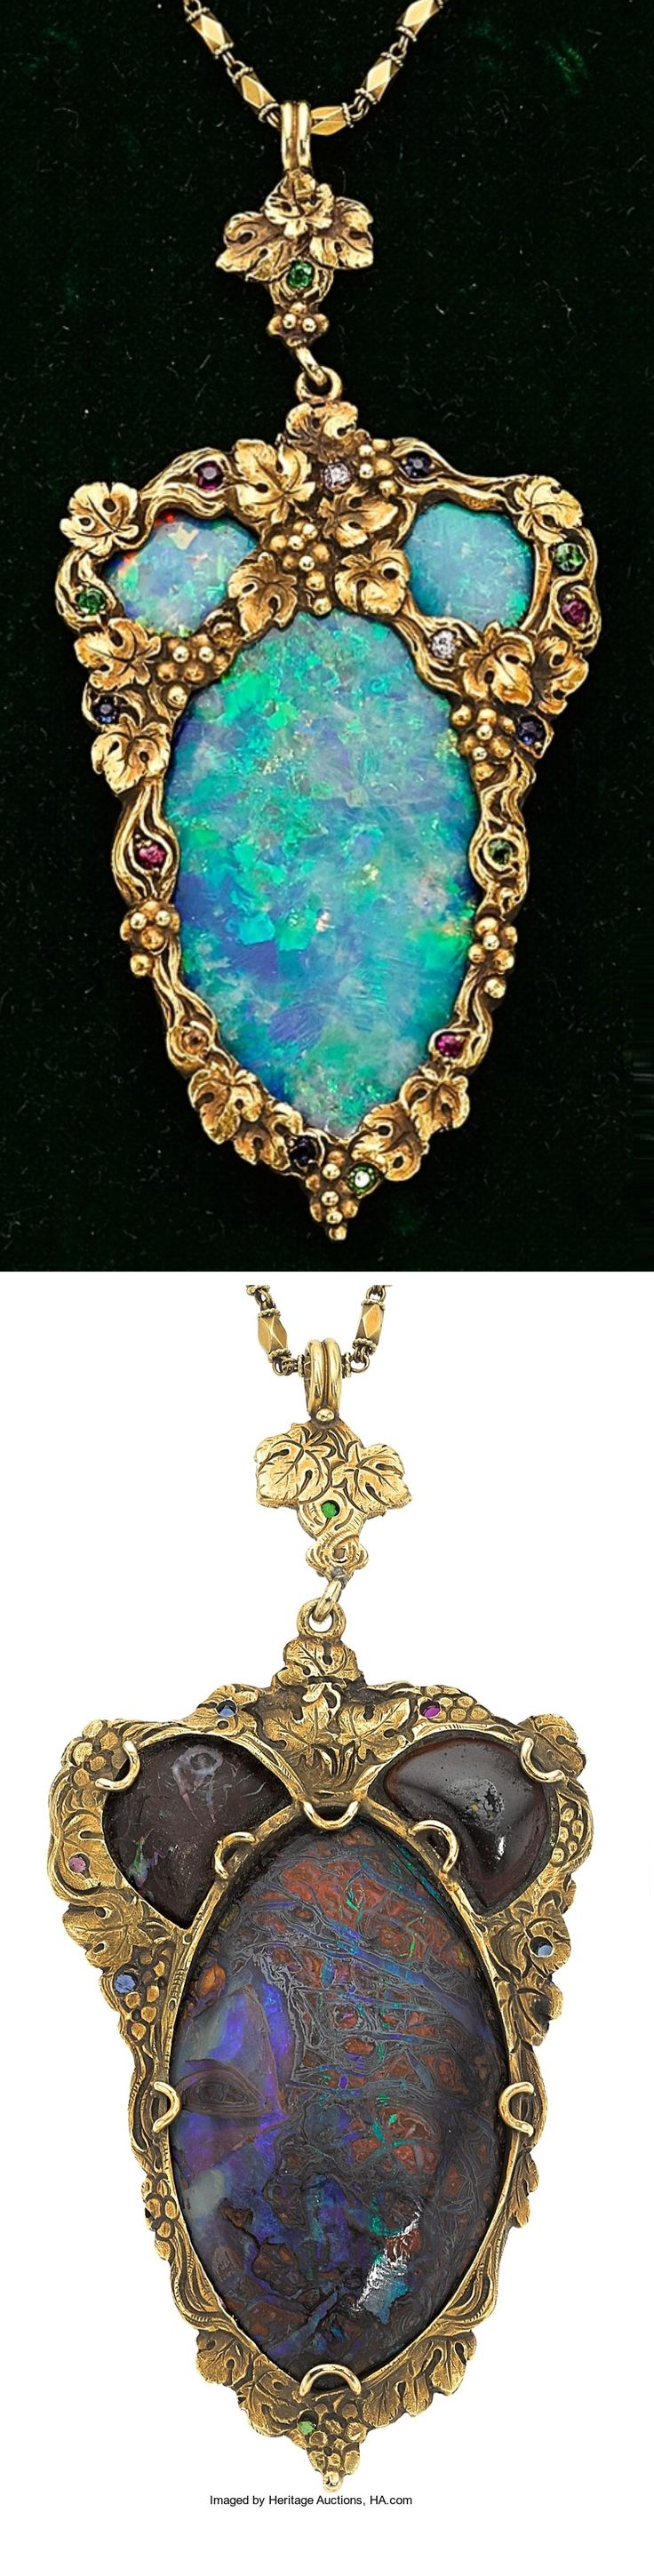 F. Walter Lawrence - An Arts and Crafts gold, boulder opal, diamond and gem-set pendant necklace. The pendant features an oval-shaped boulder opal, surmounted by two smaller boulder opals, enhanced by round-cut demantoid garnets, sapphires, rubies, citrines and pink tourmalines, accented by one pink and one near colourless diamond, set in 18k gold. 3-1/4 x 1-1/2 inches. #FWalterLawrence #ArtsAndCrafts